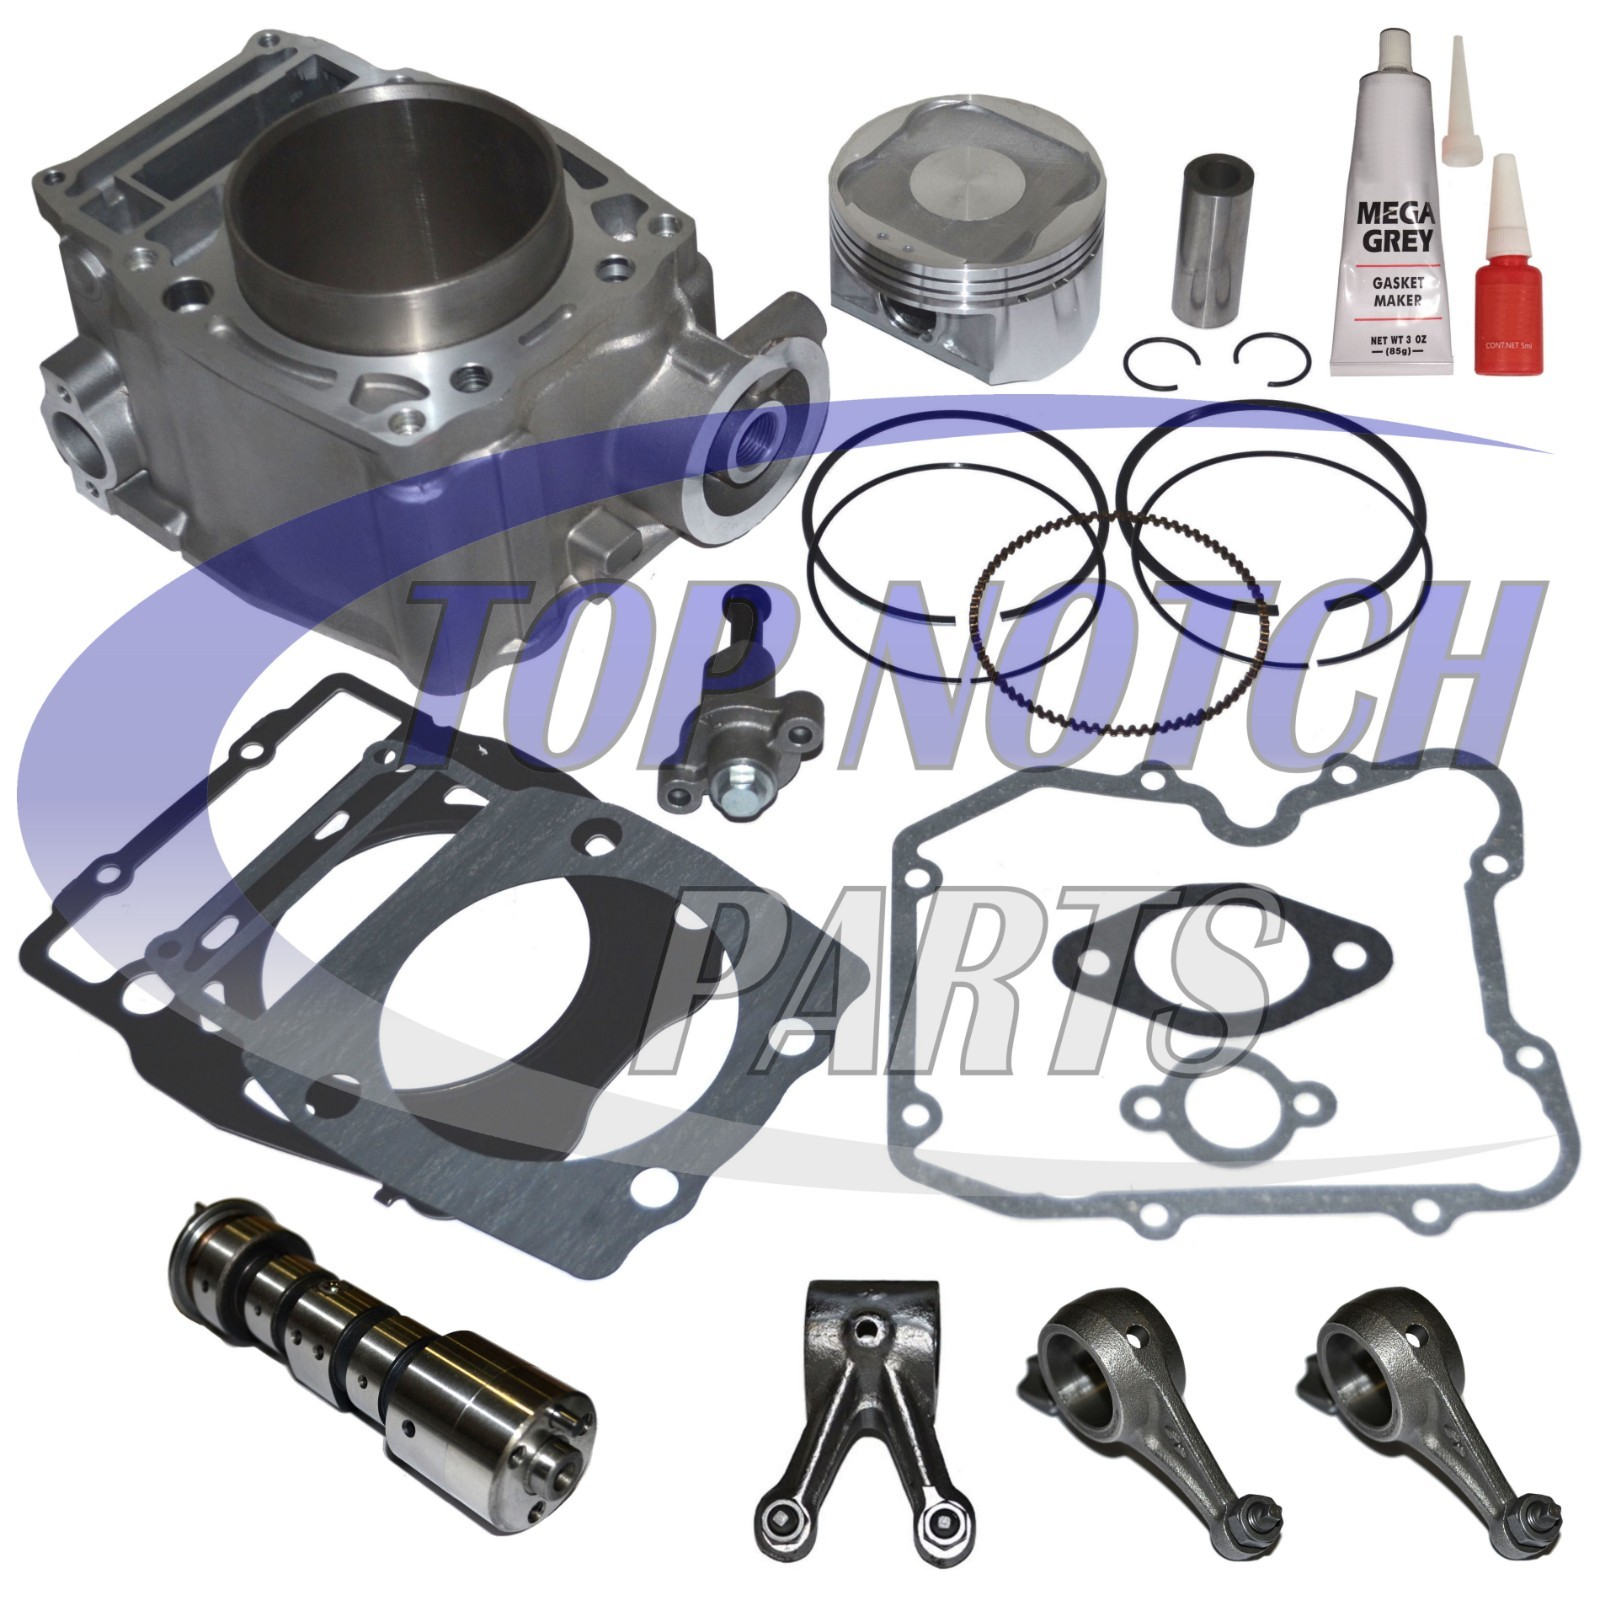 Polaris Xplorer 500 2x4 4x4 Camshaft Rocker Arm Gear GASKET Kit Set 1997 97